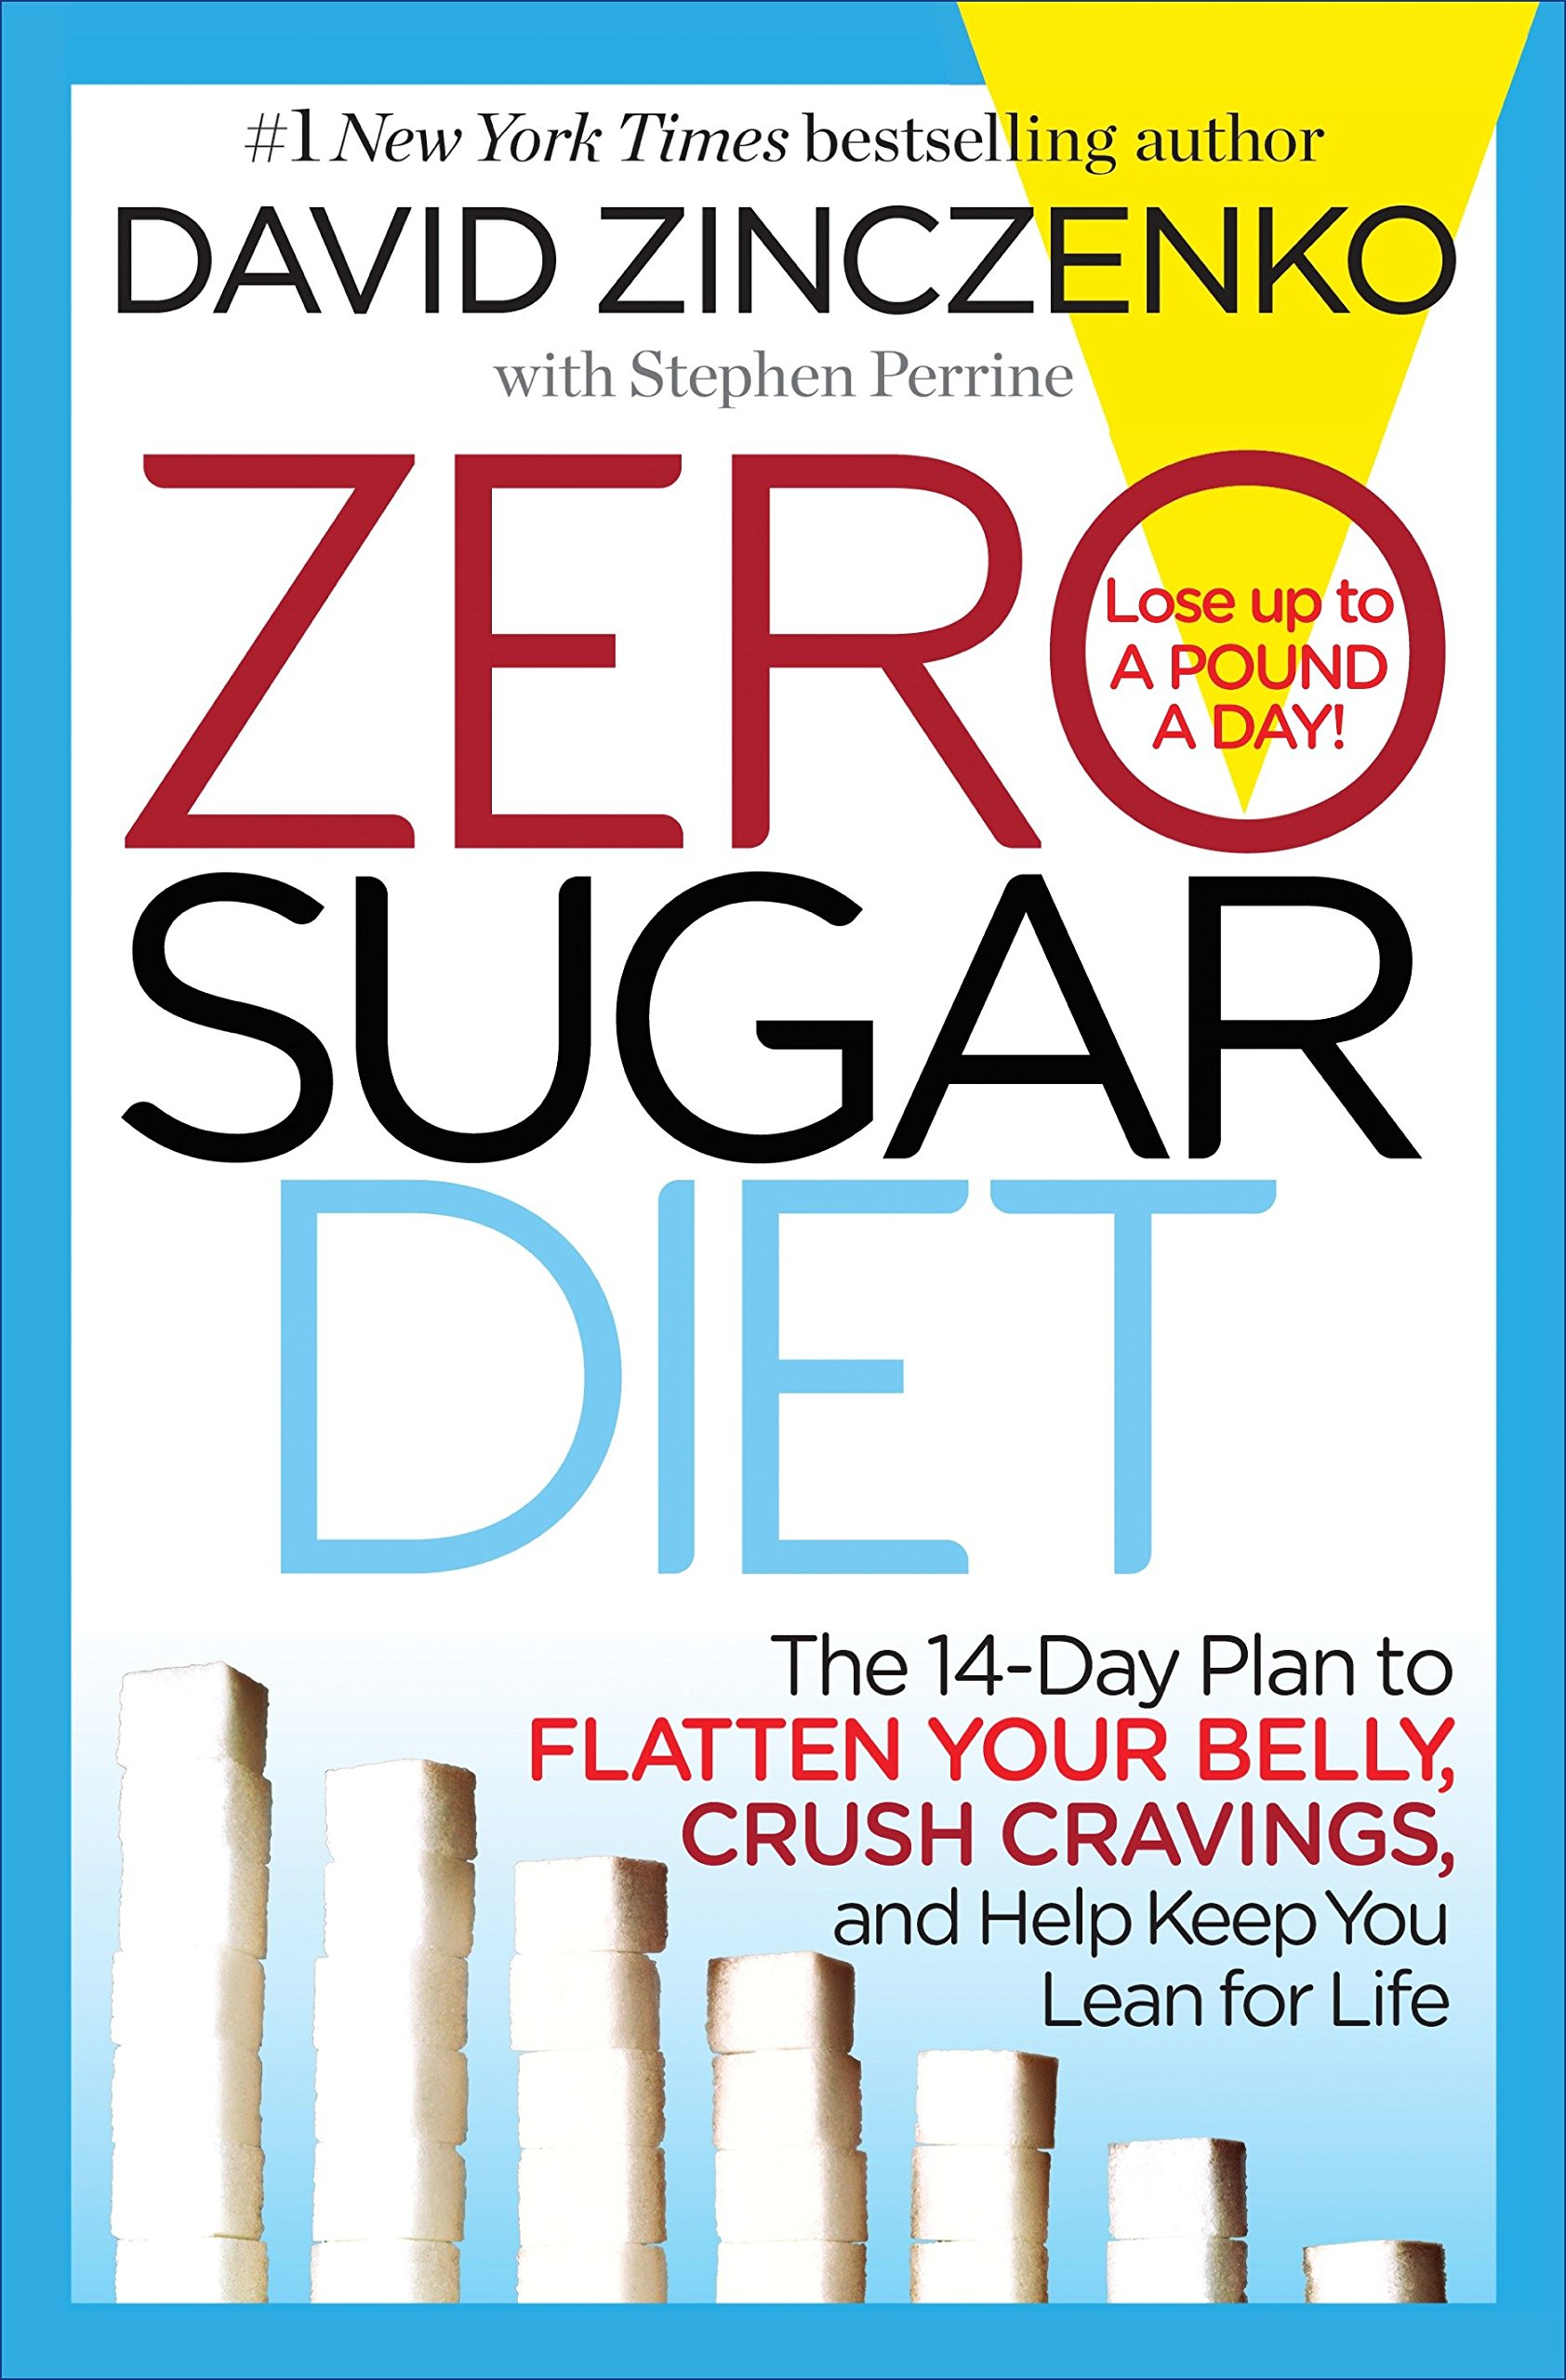 Download Zero Sugar Diet: The 14-Day Plan to Flatten Your Belly, Crush Cravings, and Help Keep You Lean for Life Text fb2 book